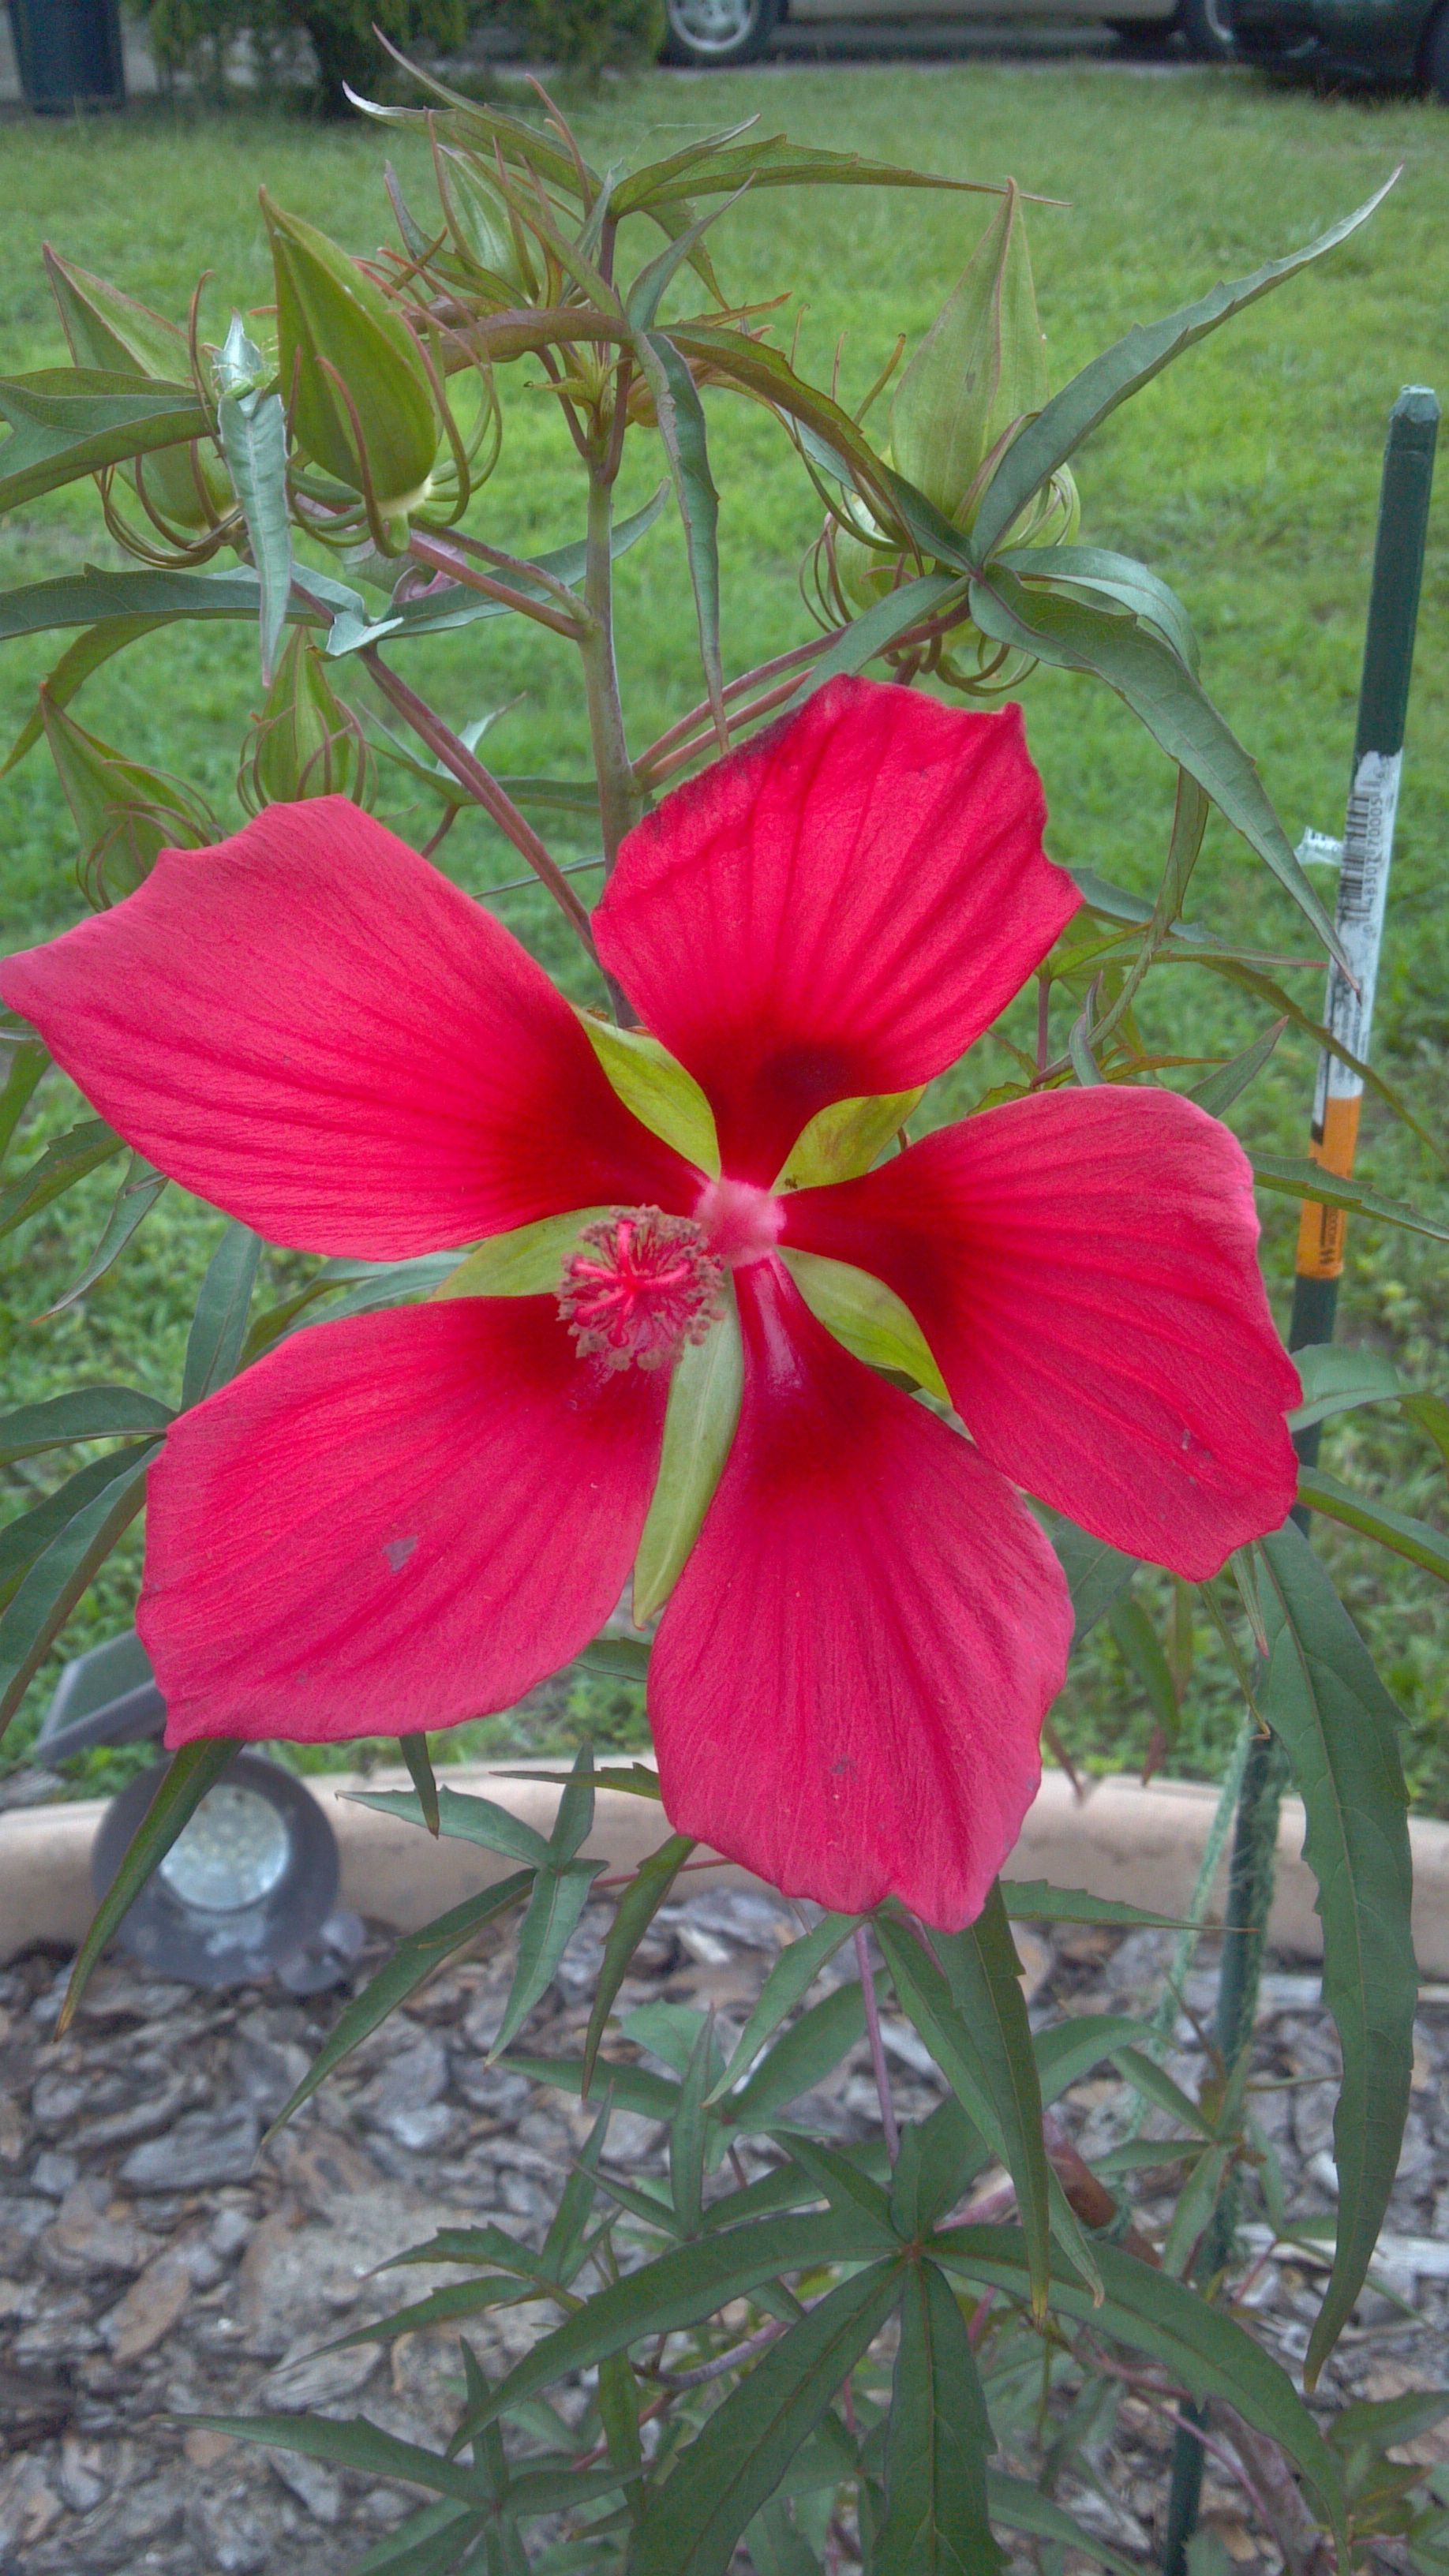 My New Pot Plant From Jims In Gibsonton Its A Swamp Hibiscus